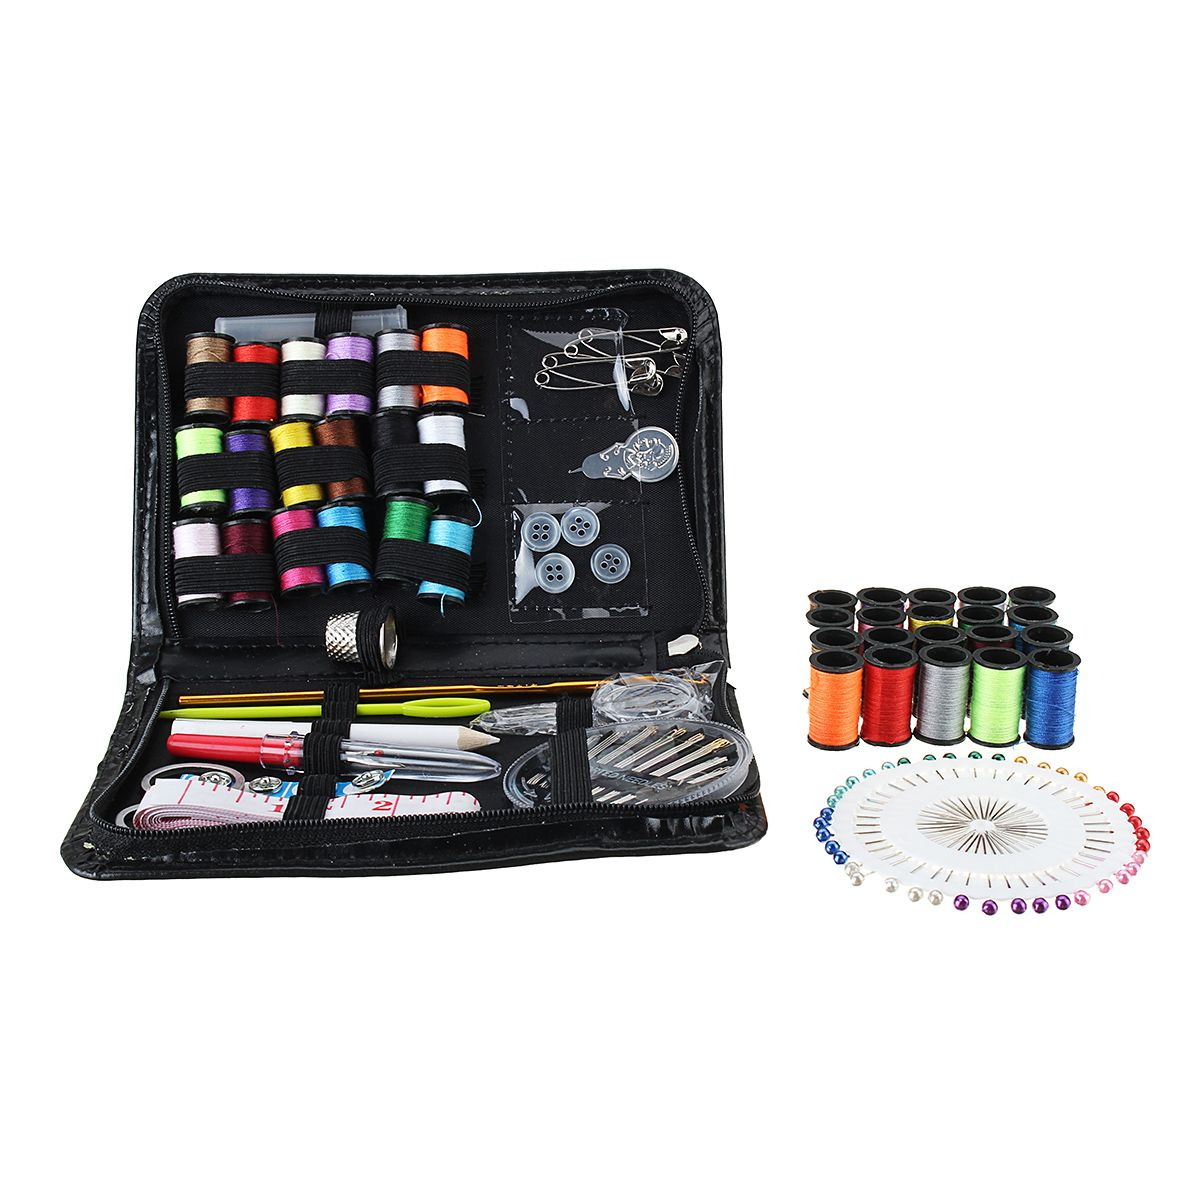 134pcs Leather Craft Tool Kit Needle Sewing Tape Thread Stitching Travel Home Hand Tools From Tools On Banggood Com Leather Craft Tools Craft Tools Leather Craft